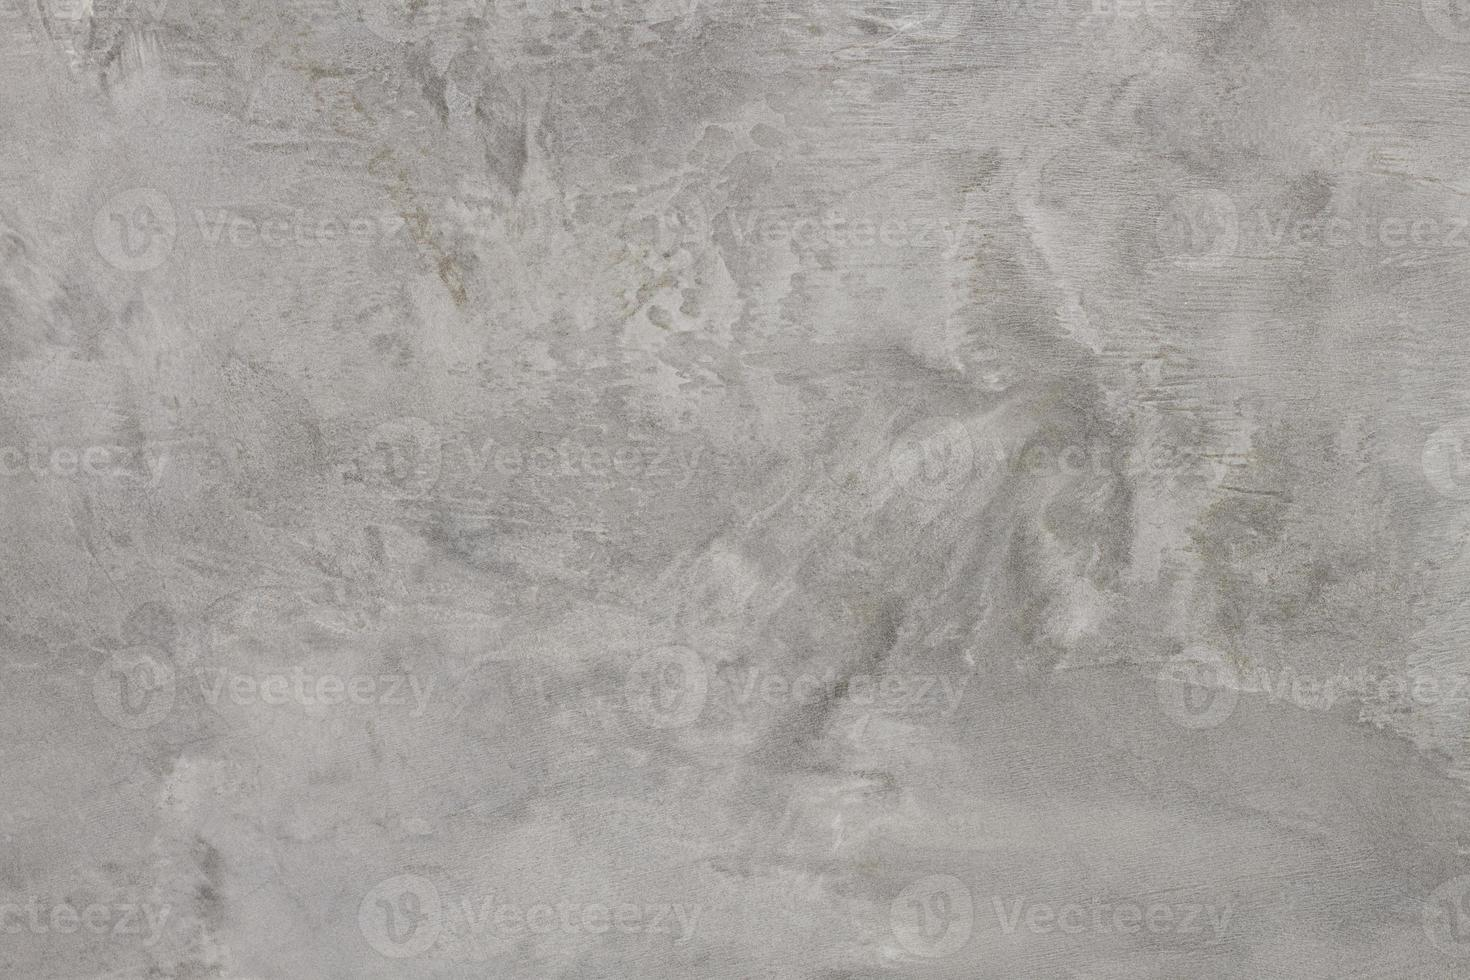 Design on cement and concrete for pattern photo